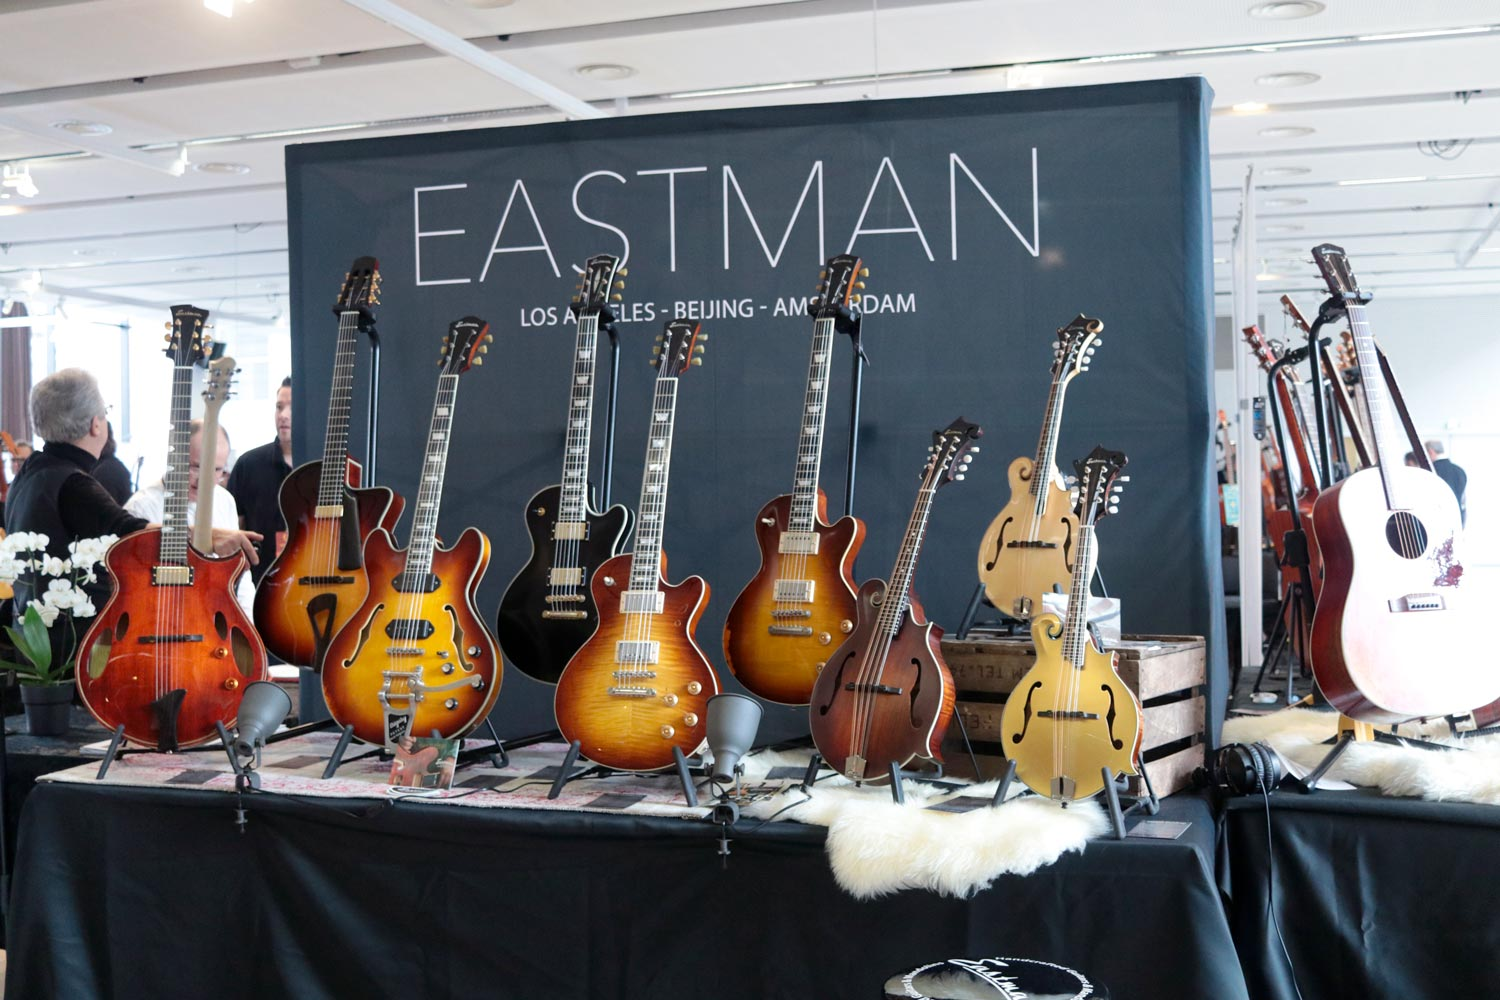 guitare electrique eastman guitares au beffroi